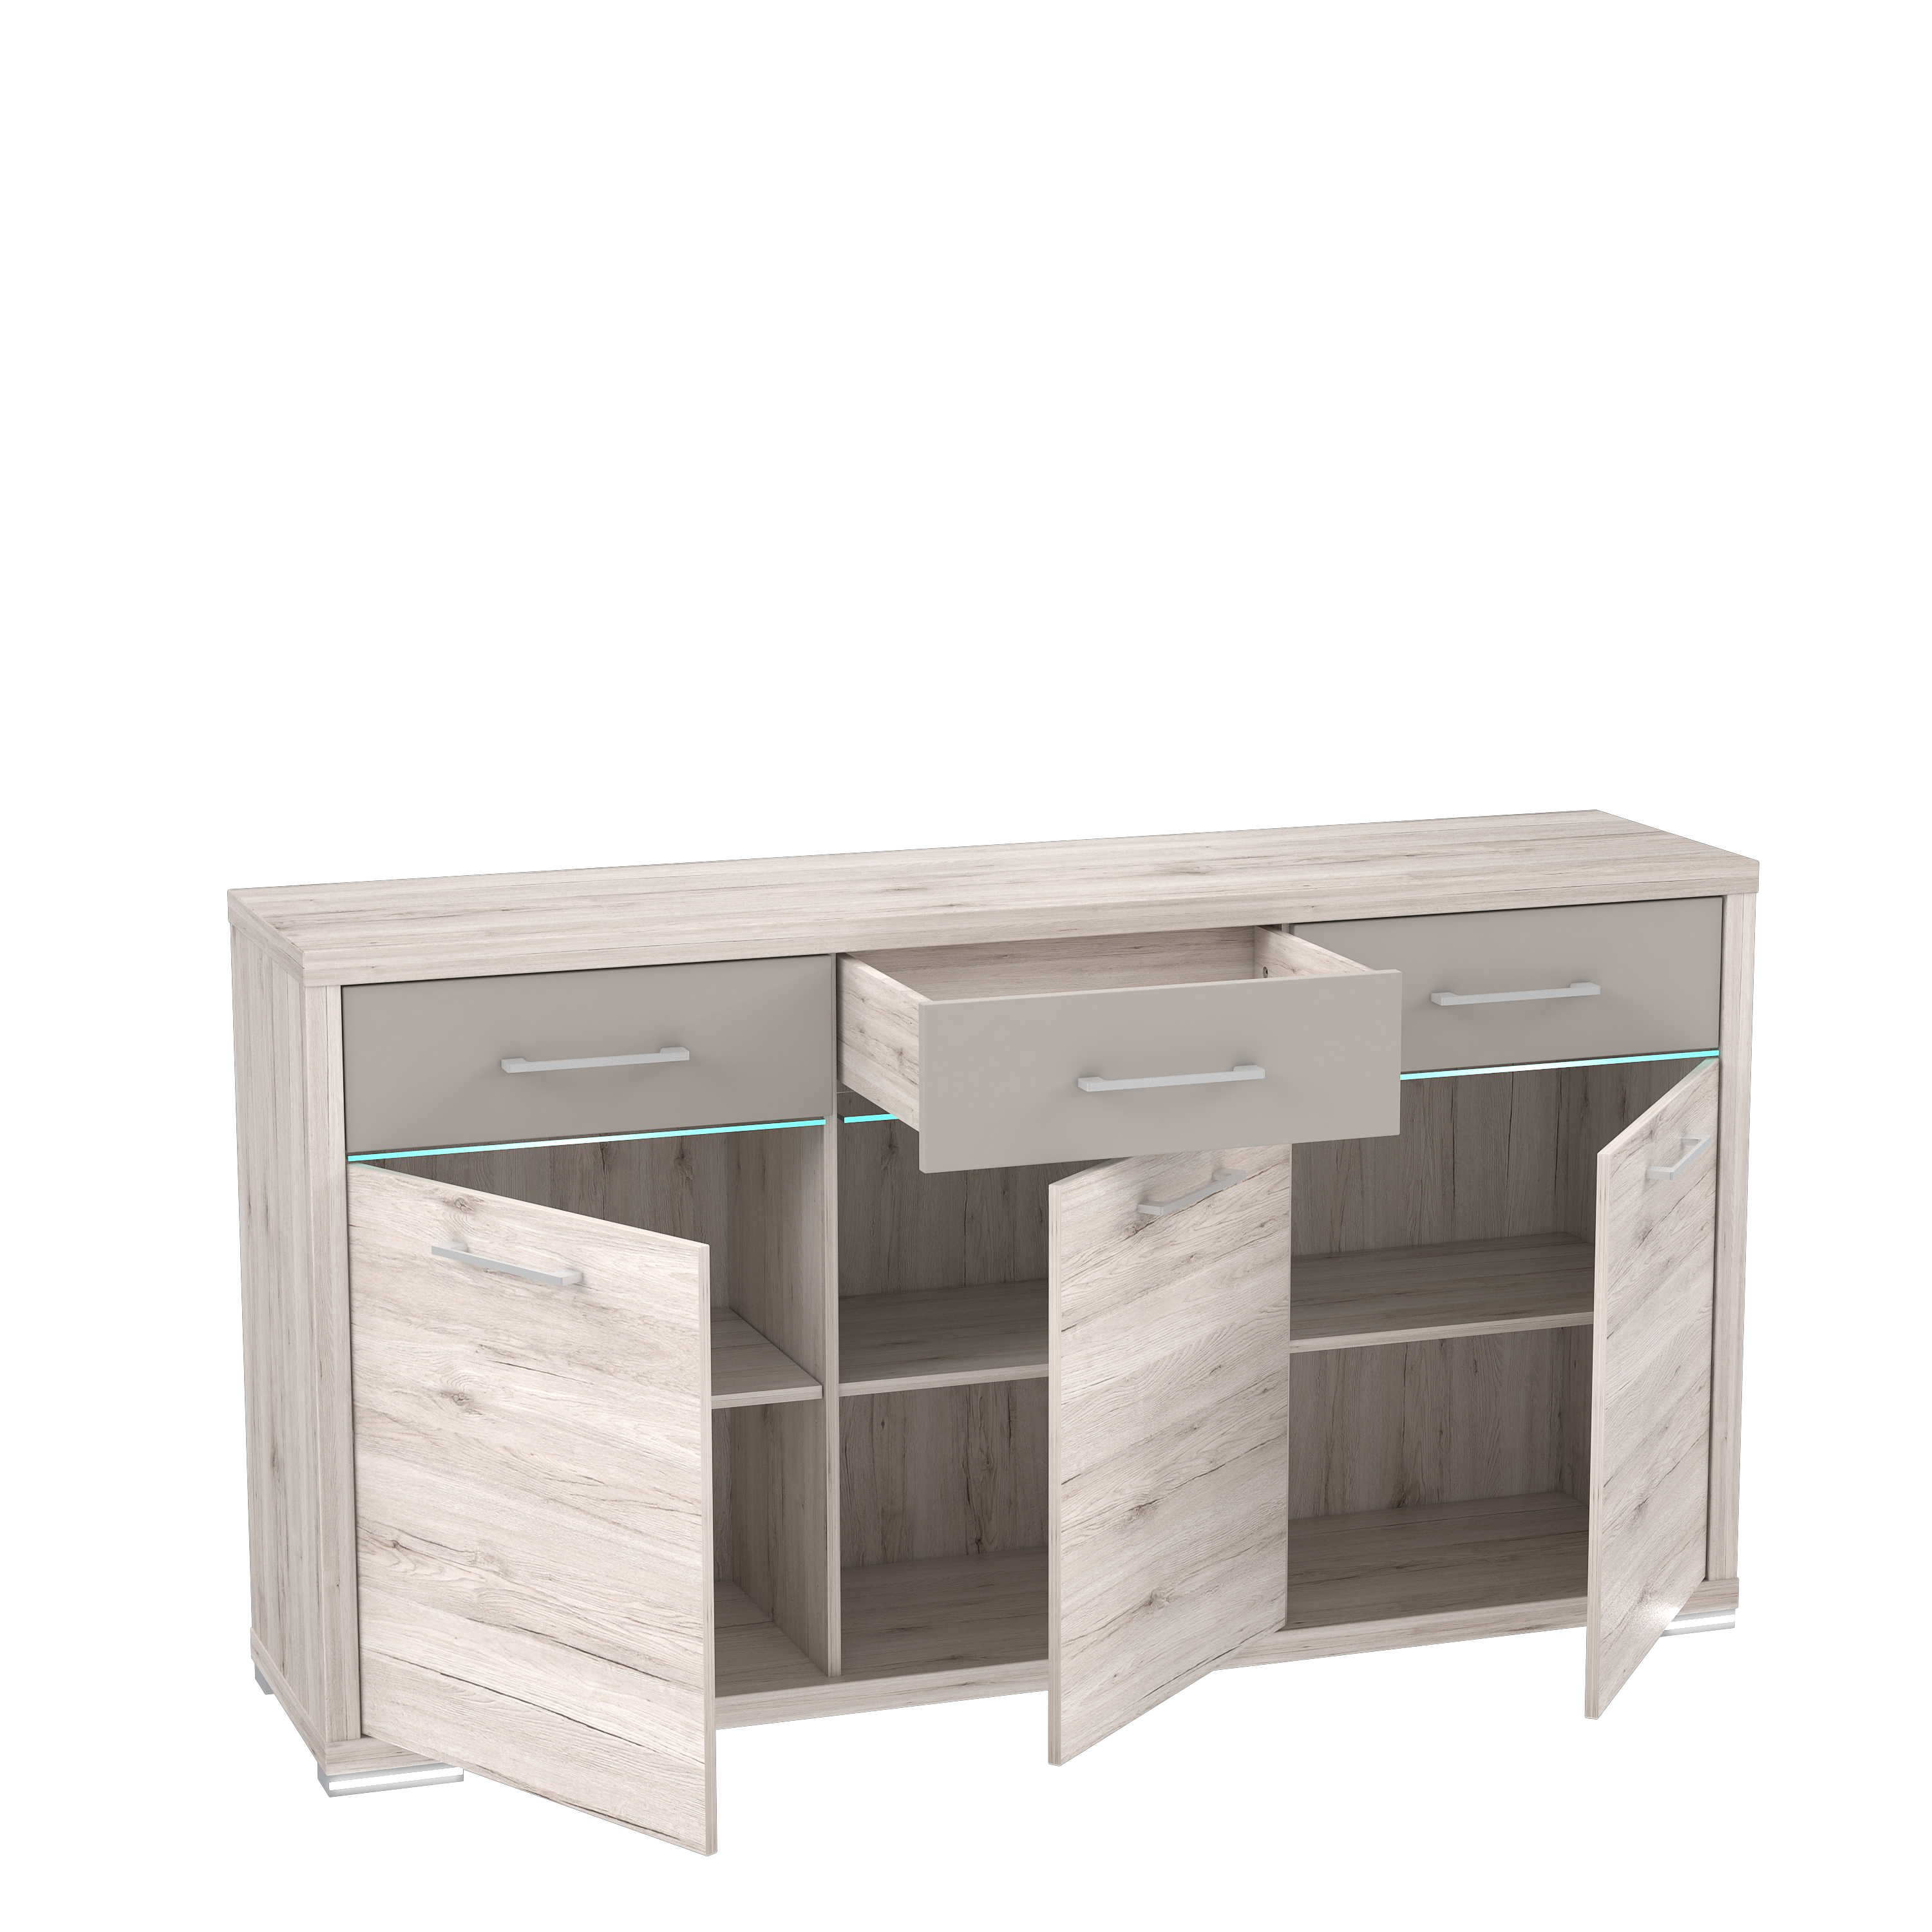 Sideboard Inkl Led Beleuchtung Stay Von Forte Sandeiche Cacao